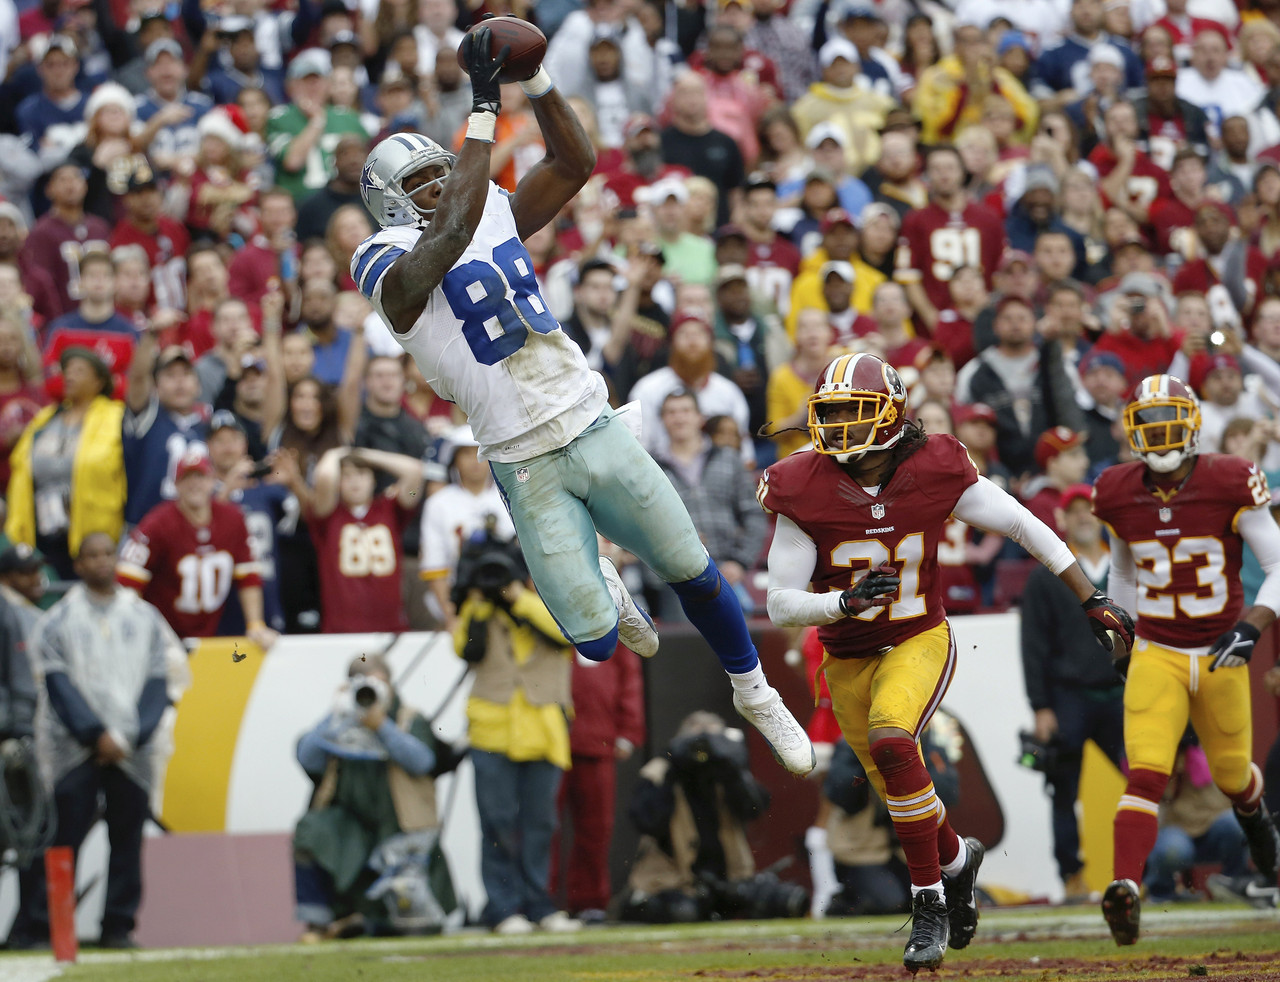 For 'Boys To Make December Run, Dez Needs To Rediscover Old Tricks